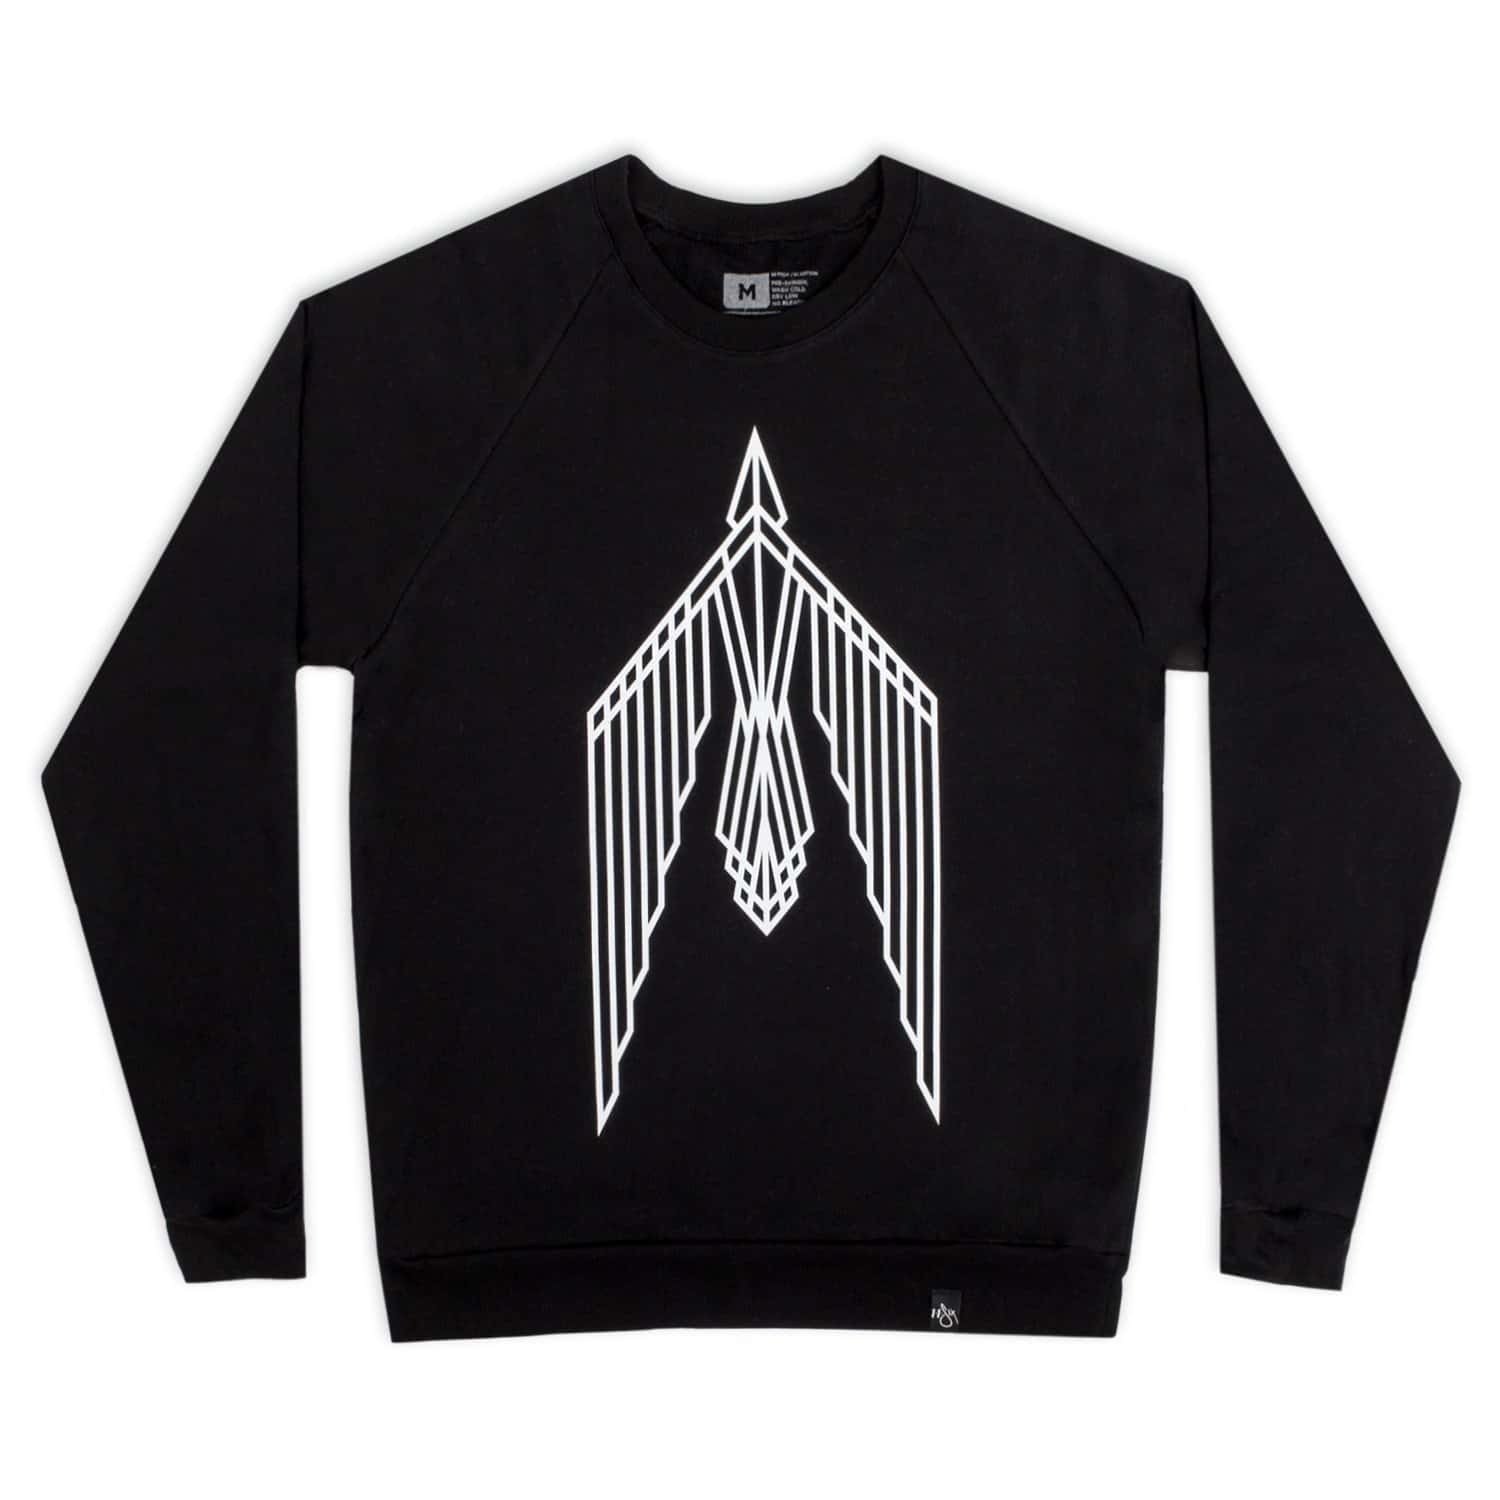 Trip Lee 'Rise Bird' Sweatshirt